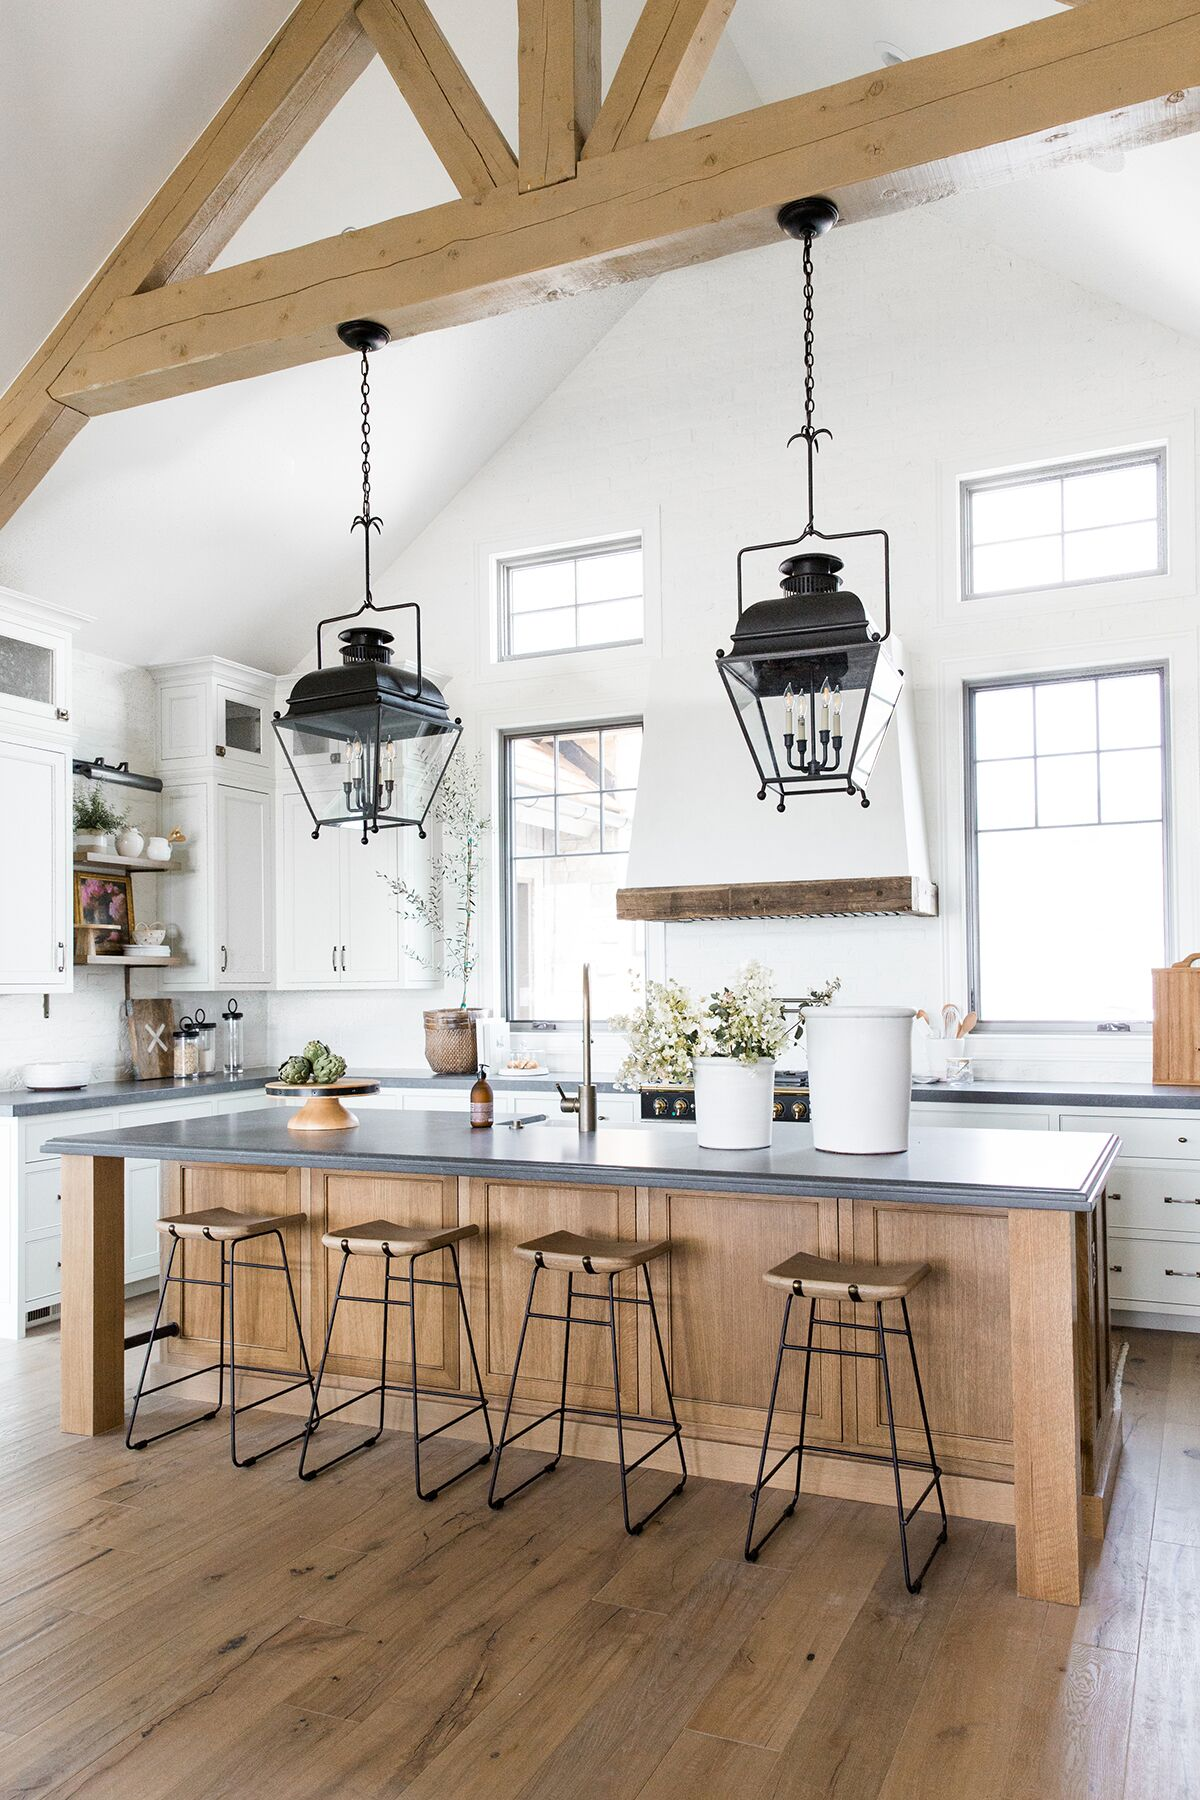 Refined,+rustic+kitchen+with+exposed+wooden+beams,+hanging+lanterns,+painted+white+brick,+oven+range+in+mountain+home+-+Studio+McGee+Design-1.jpg